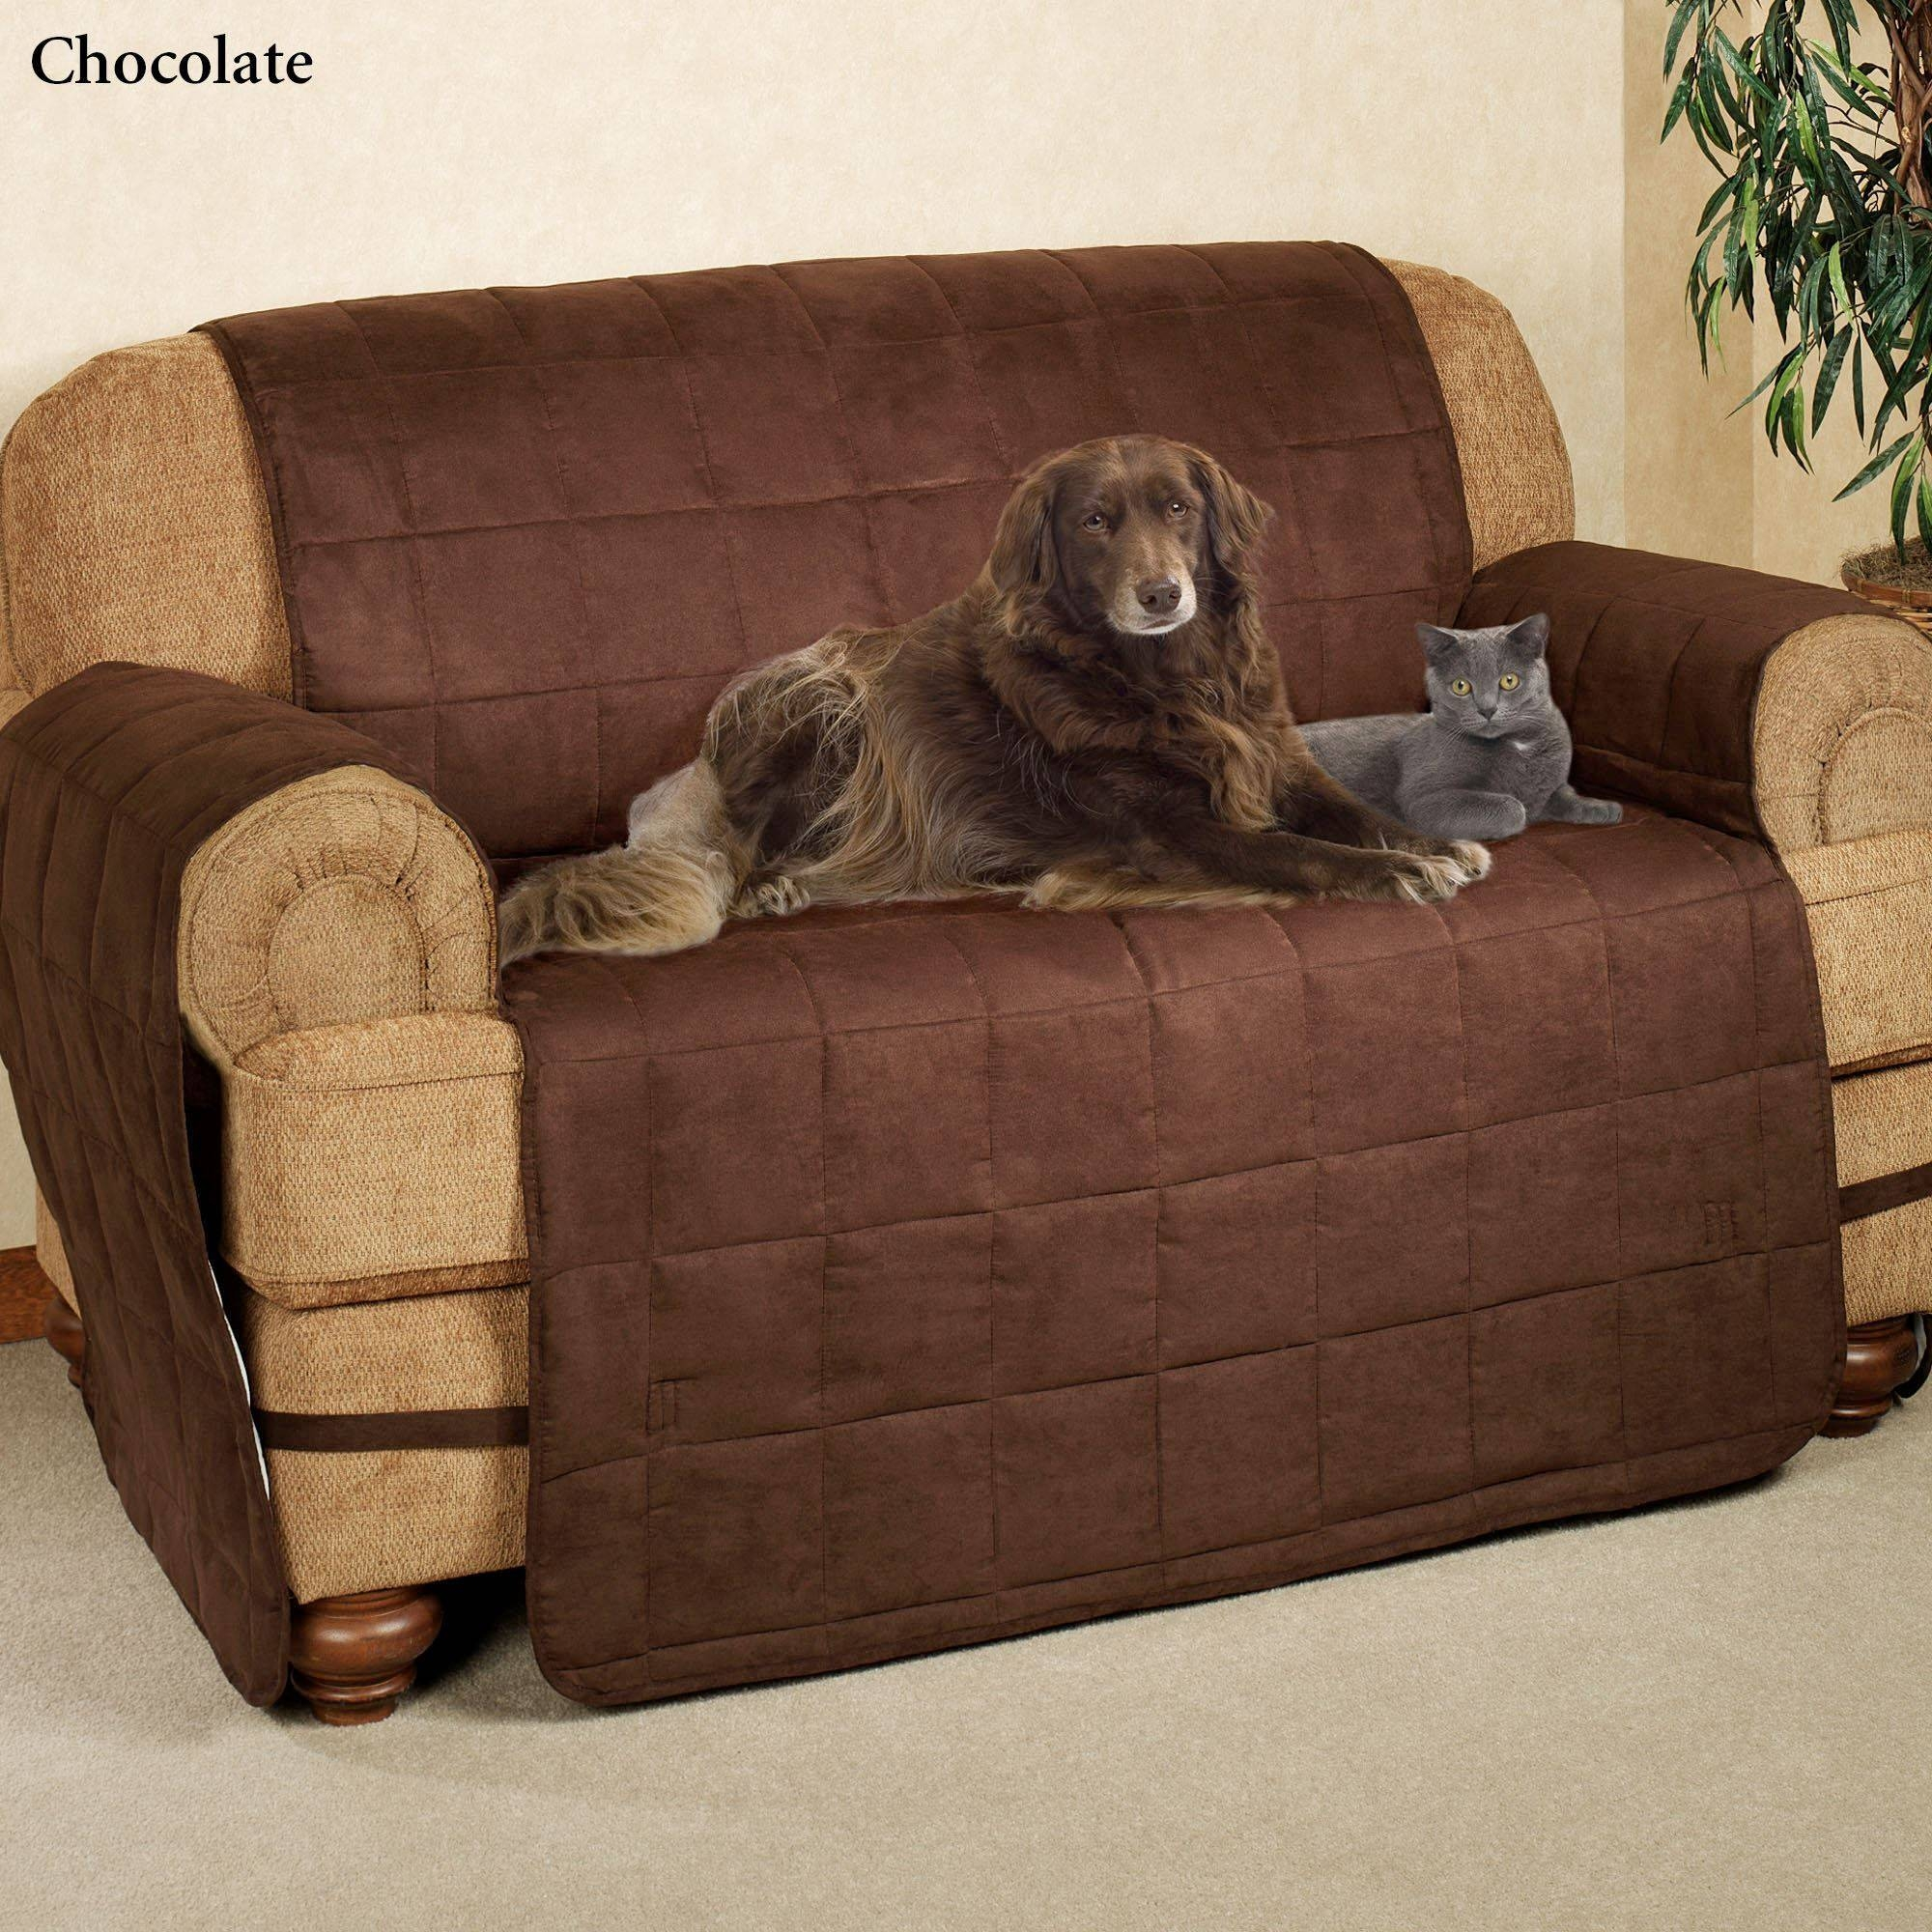 Ultimate Pet Furniture Protectors With Straps with regard to Suede Slipcovers for Sofas (Image 14 of 15)